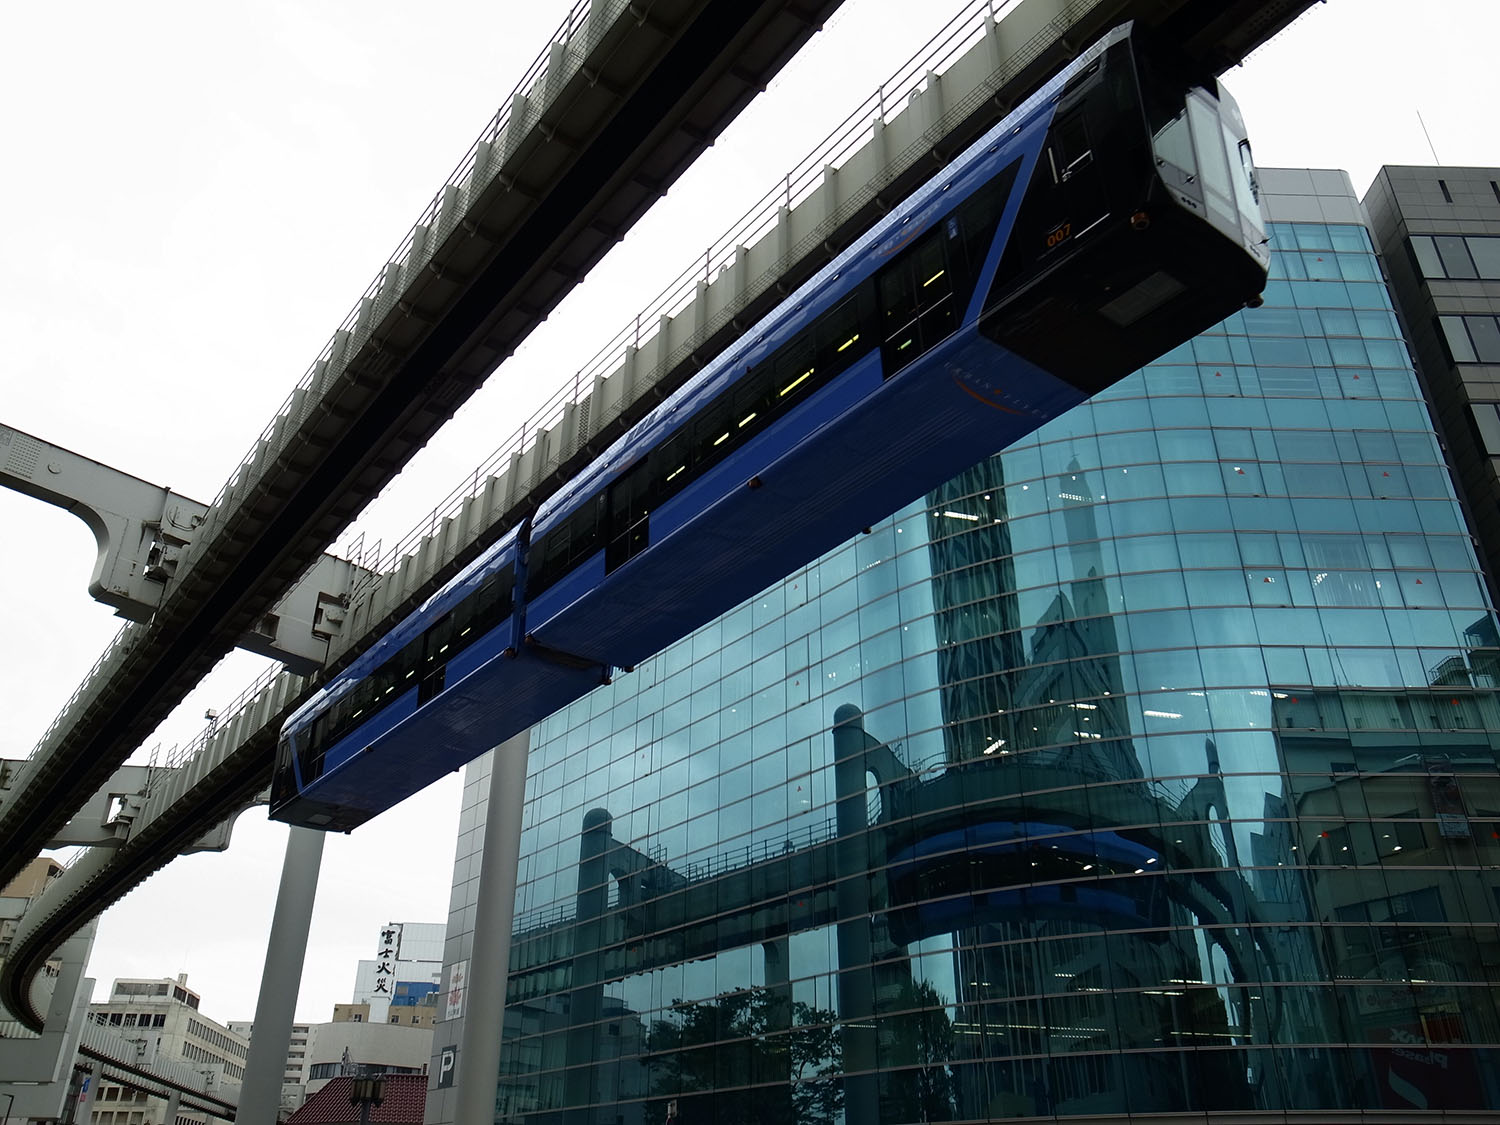 Urban Monorail